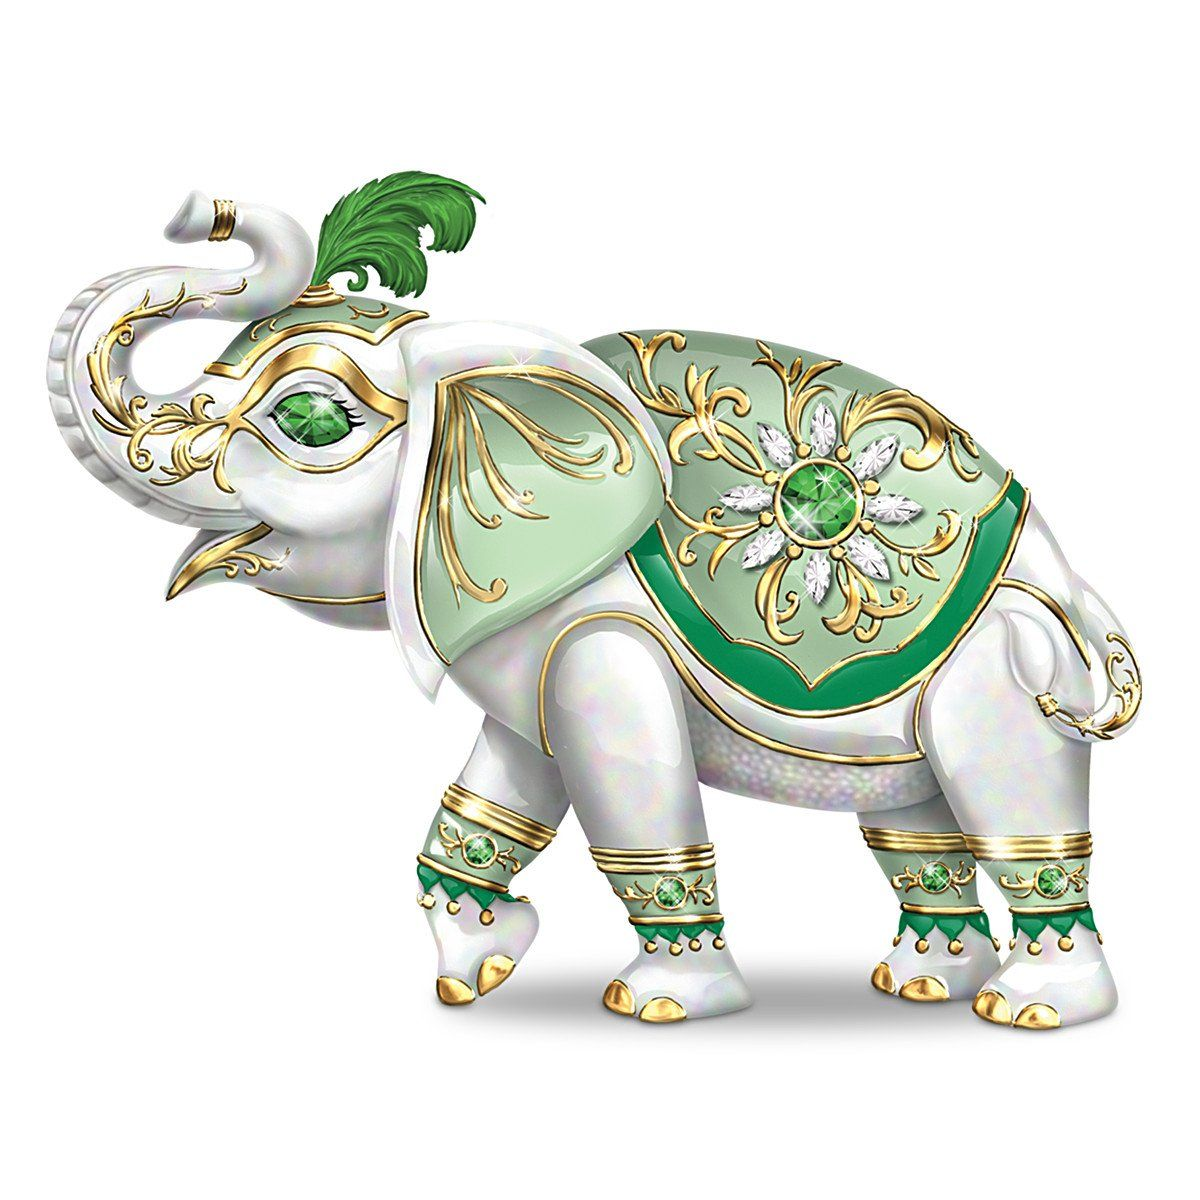 Good fortune elephant figurine with golden filigree and faux gems a dazzling elephant diva who sparkles glamorously from the tassel of her tail to the tip of her upturned trunk a symbol of prosperity and good fortune biocorpaavc